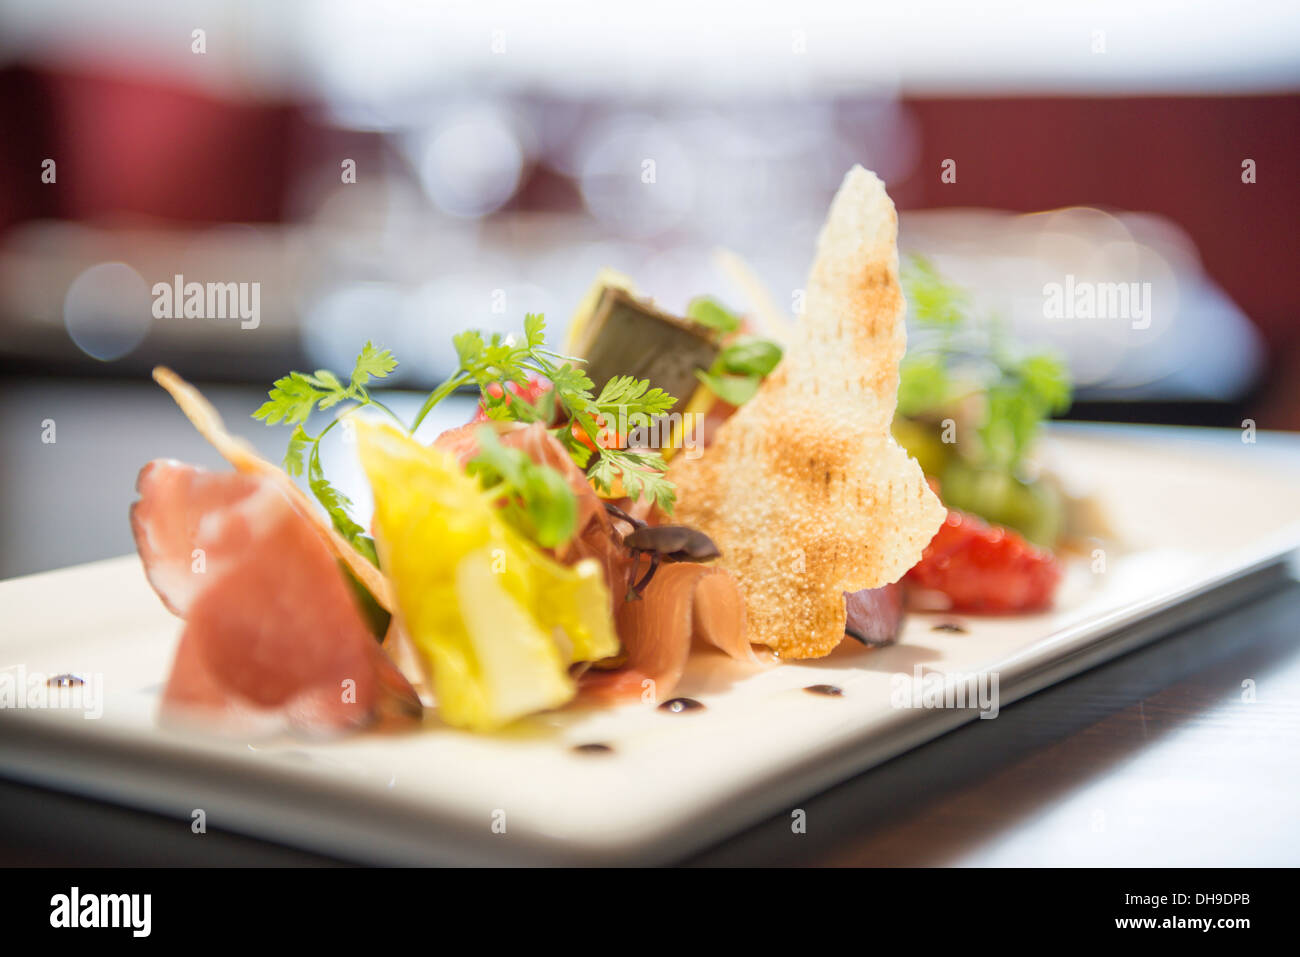 Prosciutto ham and vegetable starter food from a fine for Fine dining food